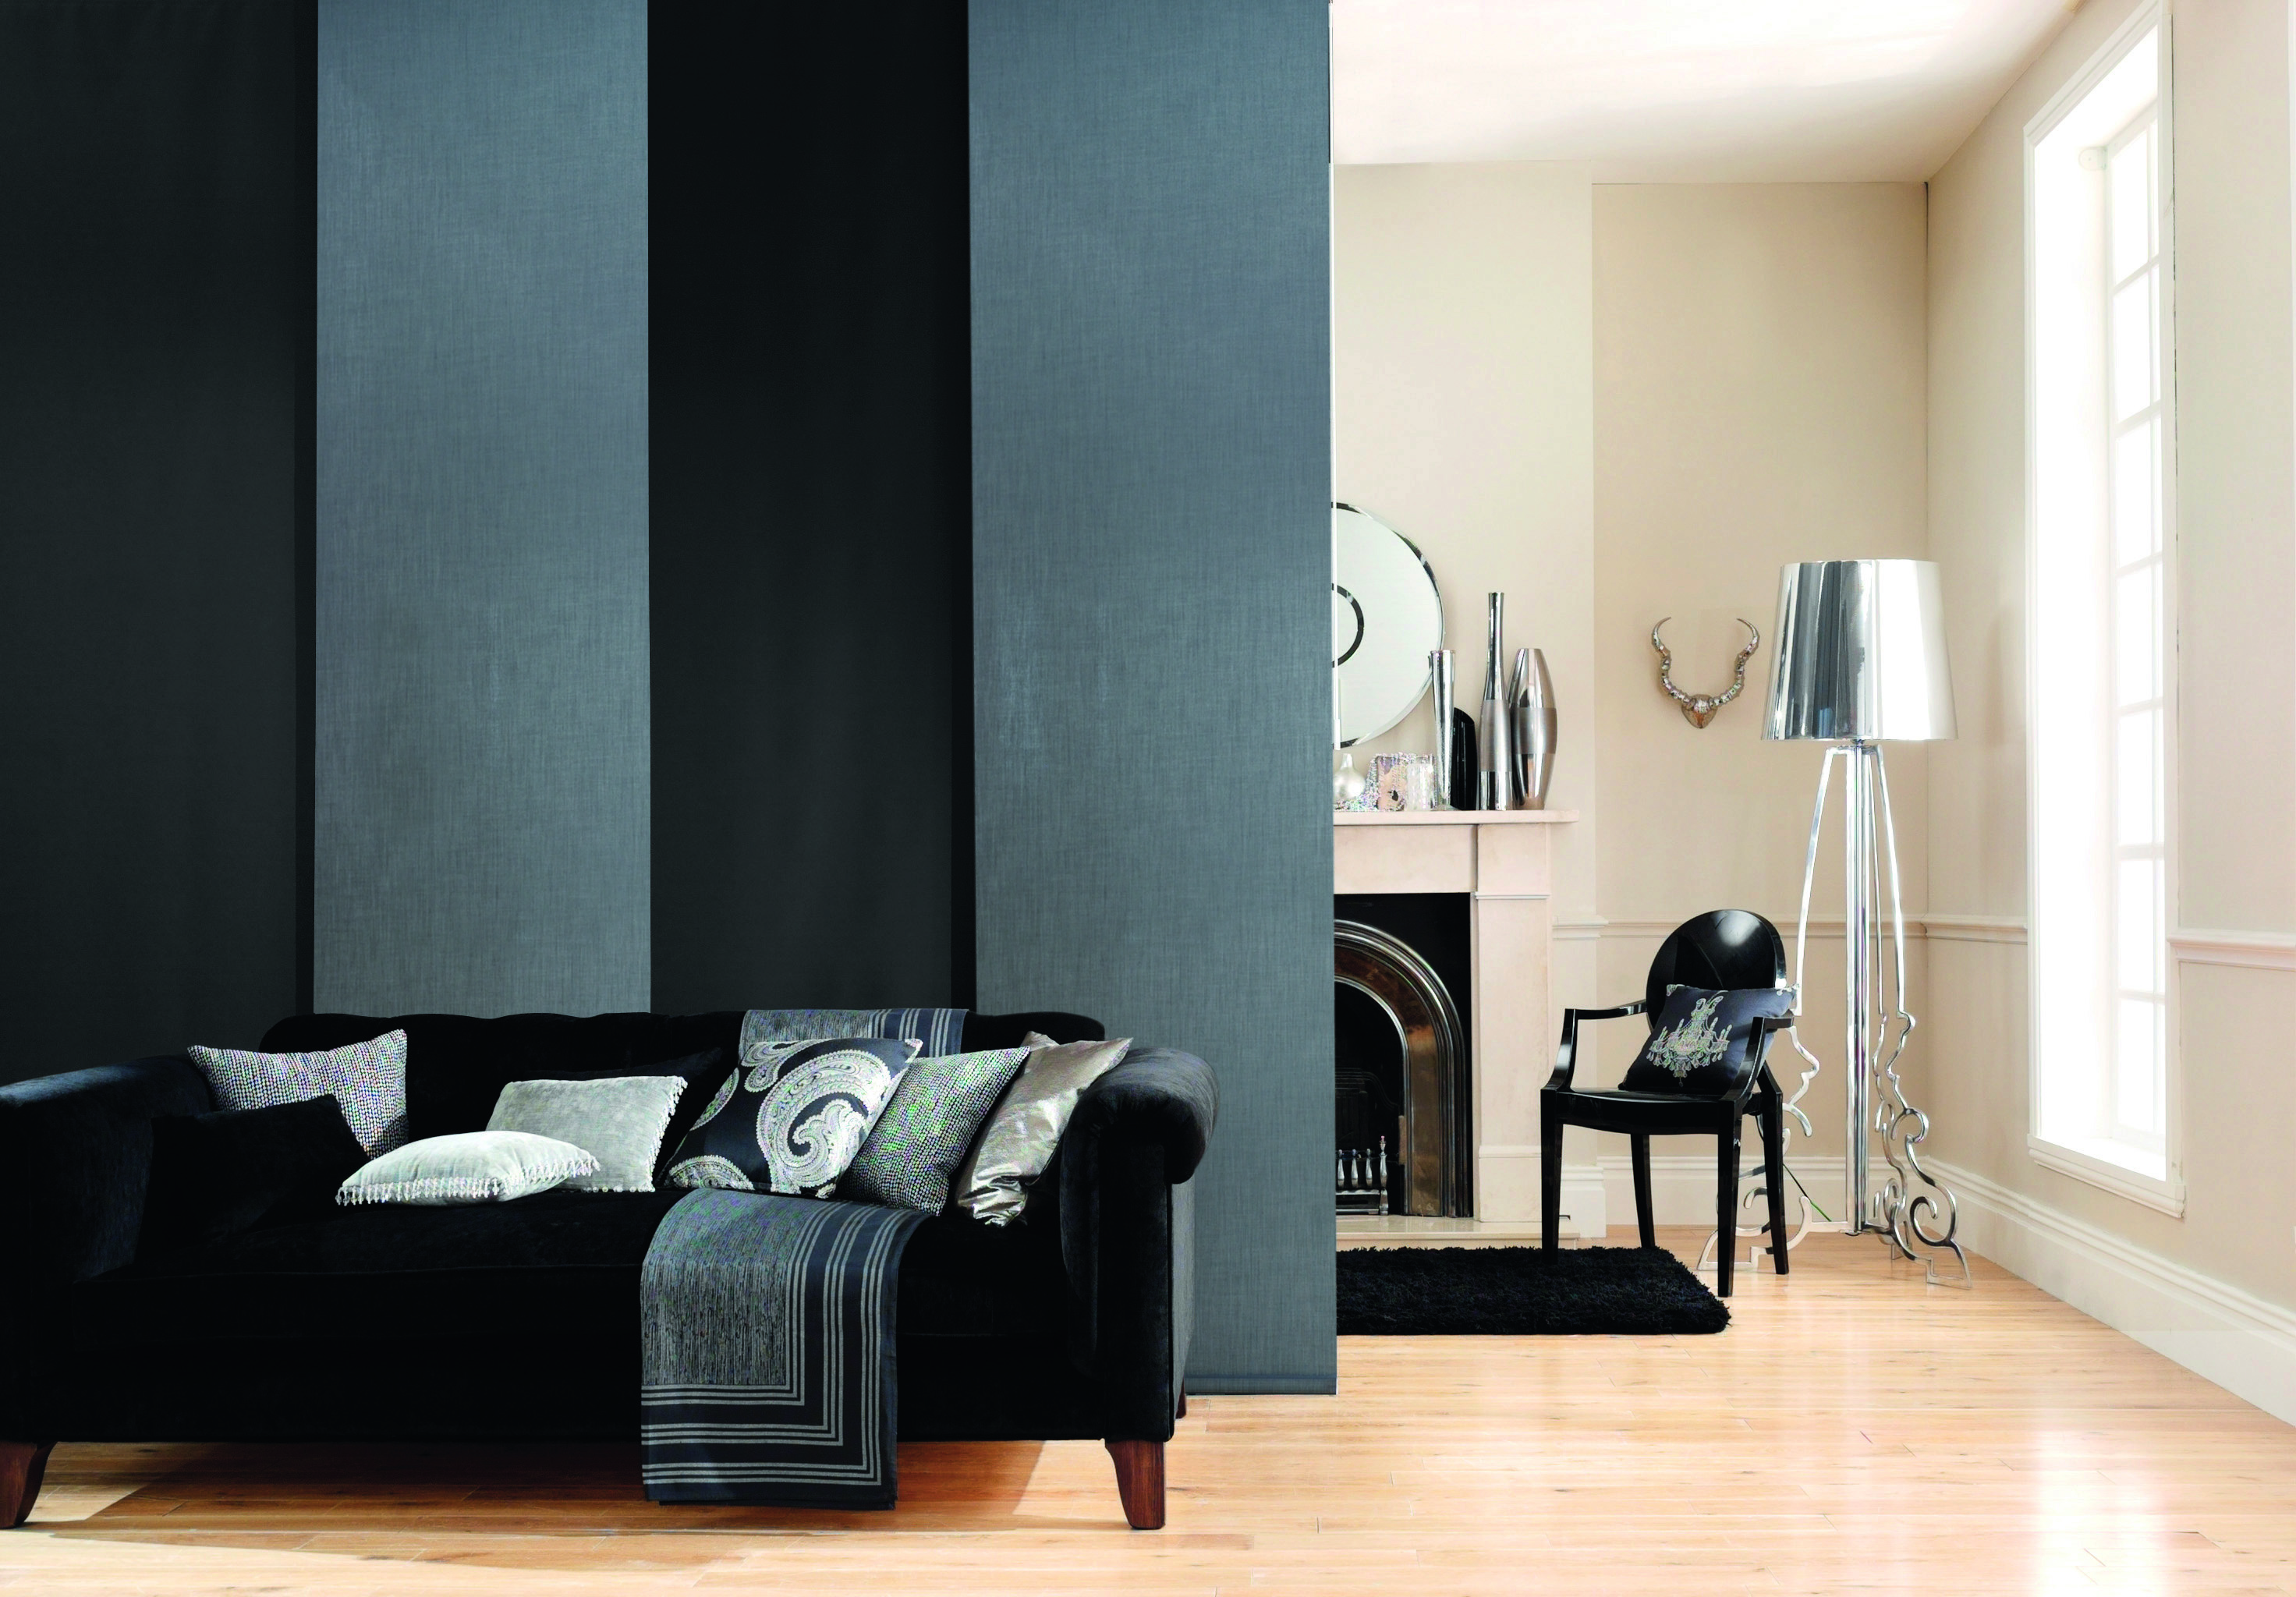 storistes de france pamela gallart. Black Bedroom Furniture Sets. Home Design Ideas